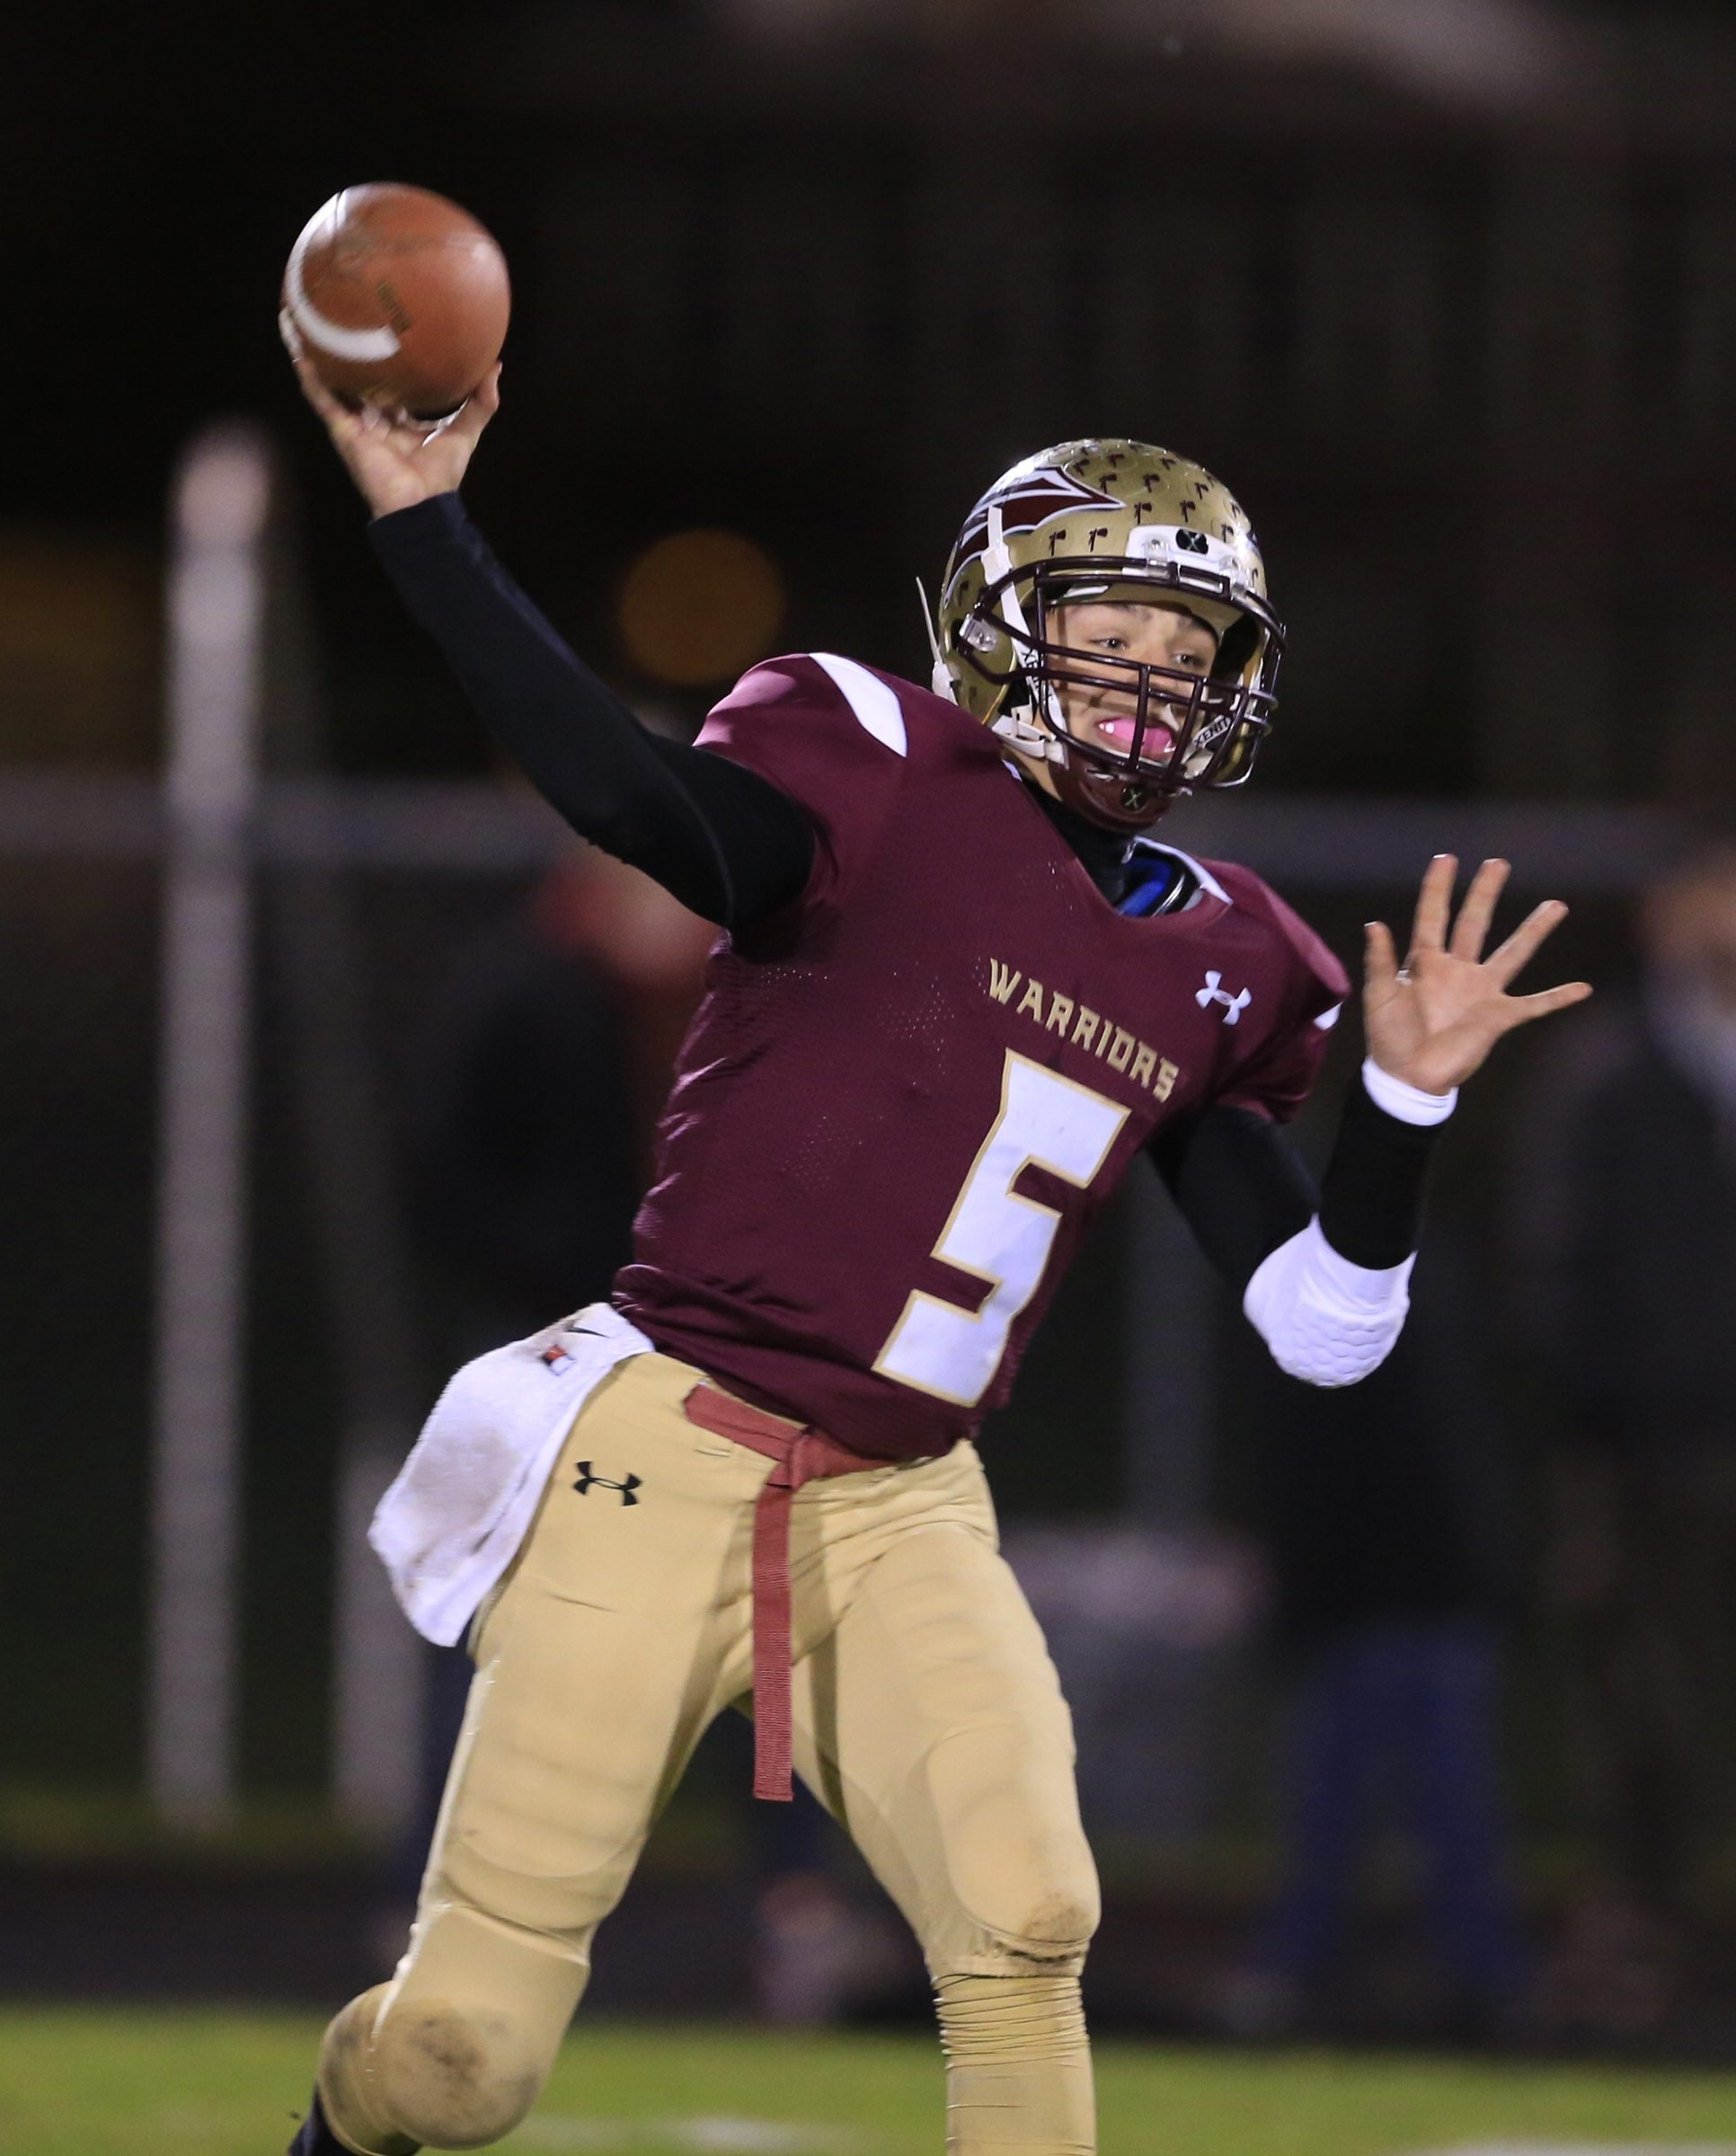 Eric Bartnik finished with five TDs to lead Cheektowaga past Springville.